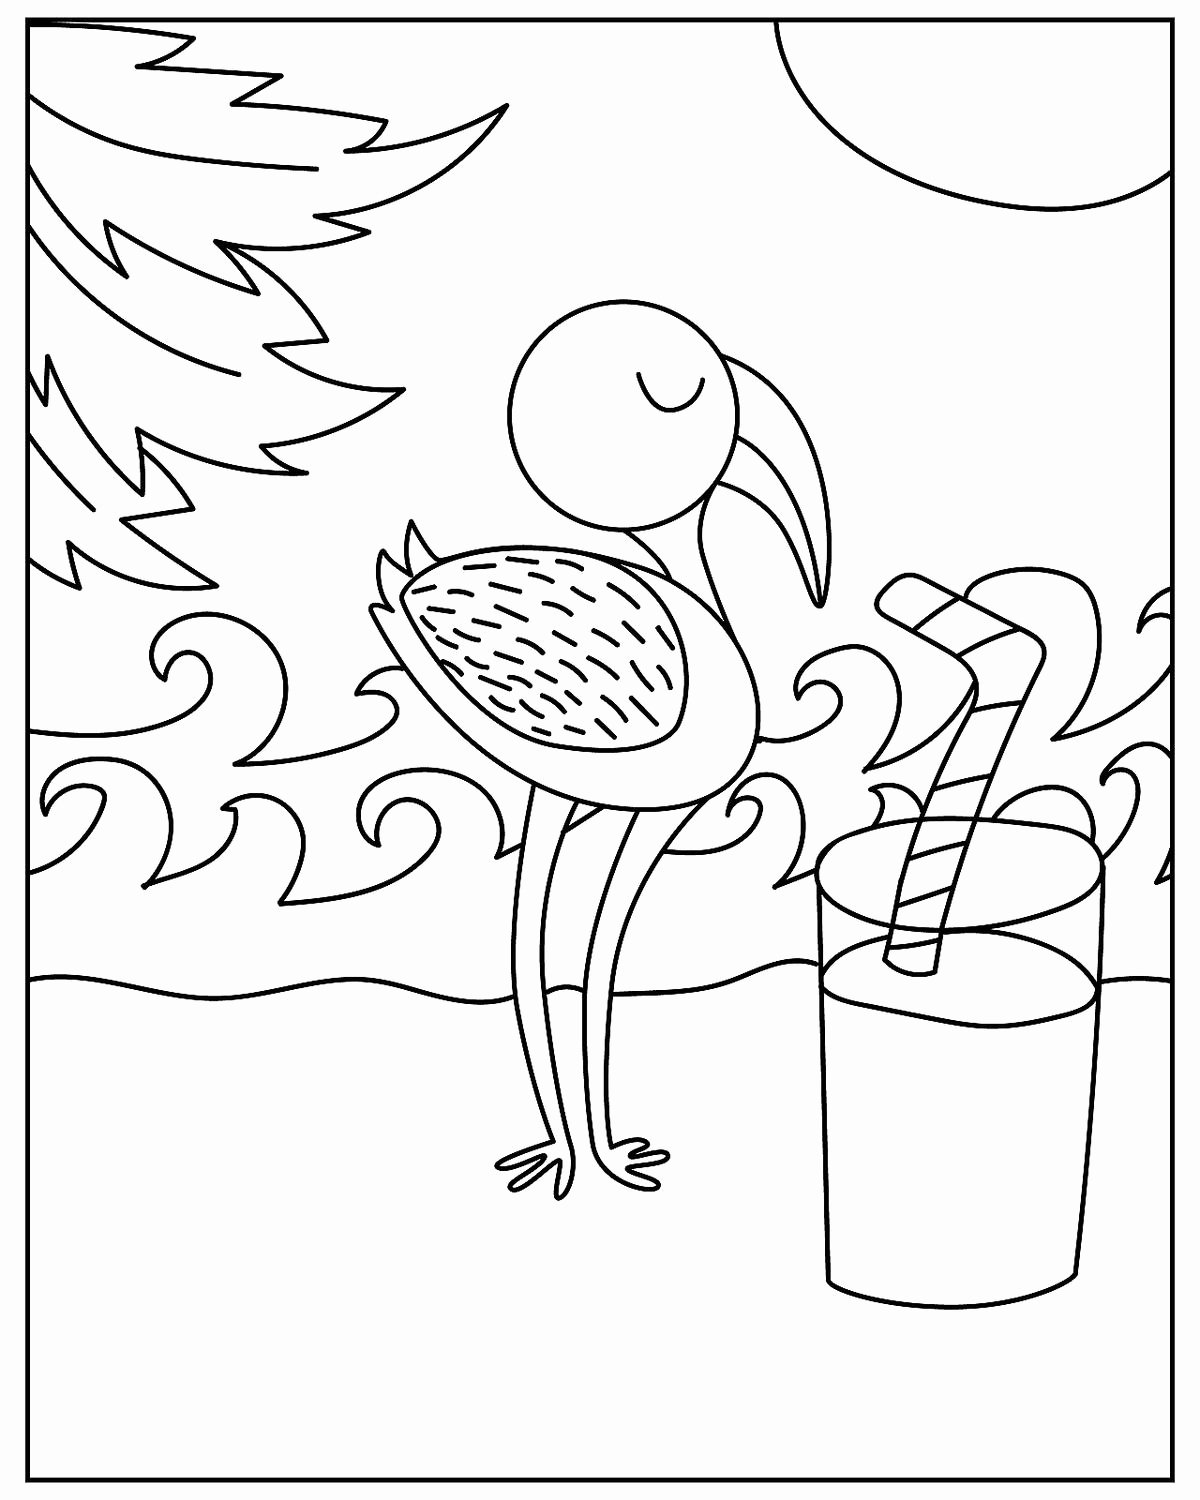 Printable Coloring Worksheets for Preschoolers Printable Free Printable Coloring Sheets for Preschoolers Bird Pages